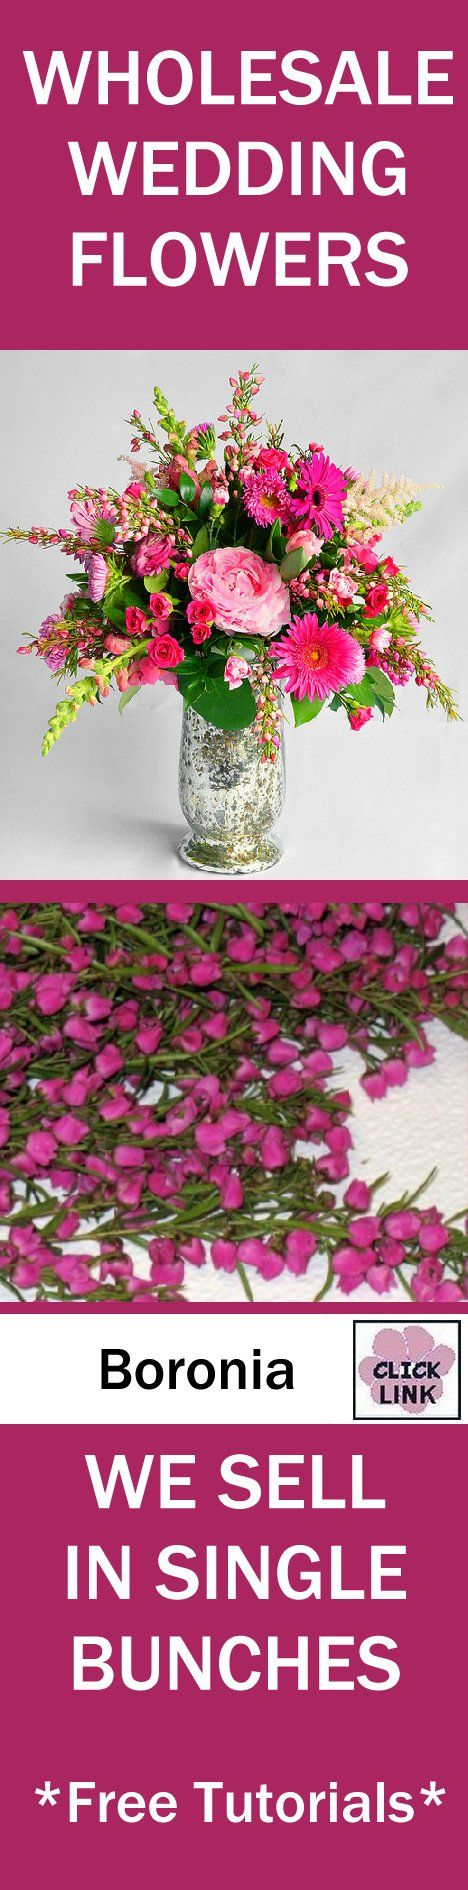 Wedding Flowers Wholesale - Boronia Heather  - Dainty hot pink buds cluster heavily on a grassy stem.  See tips from professional wedding florist on buying wholesale flowers online.  Free tutorials.